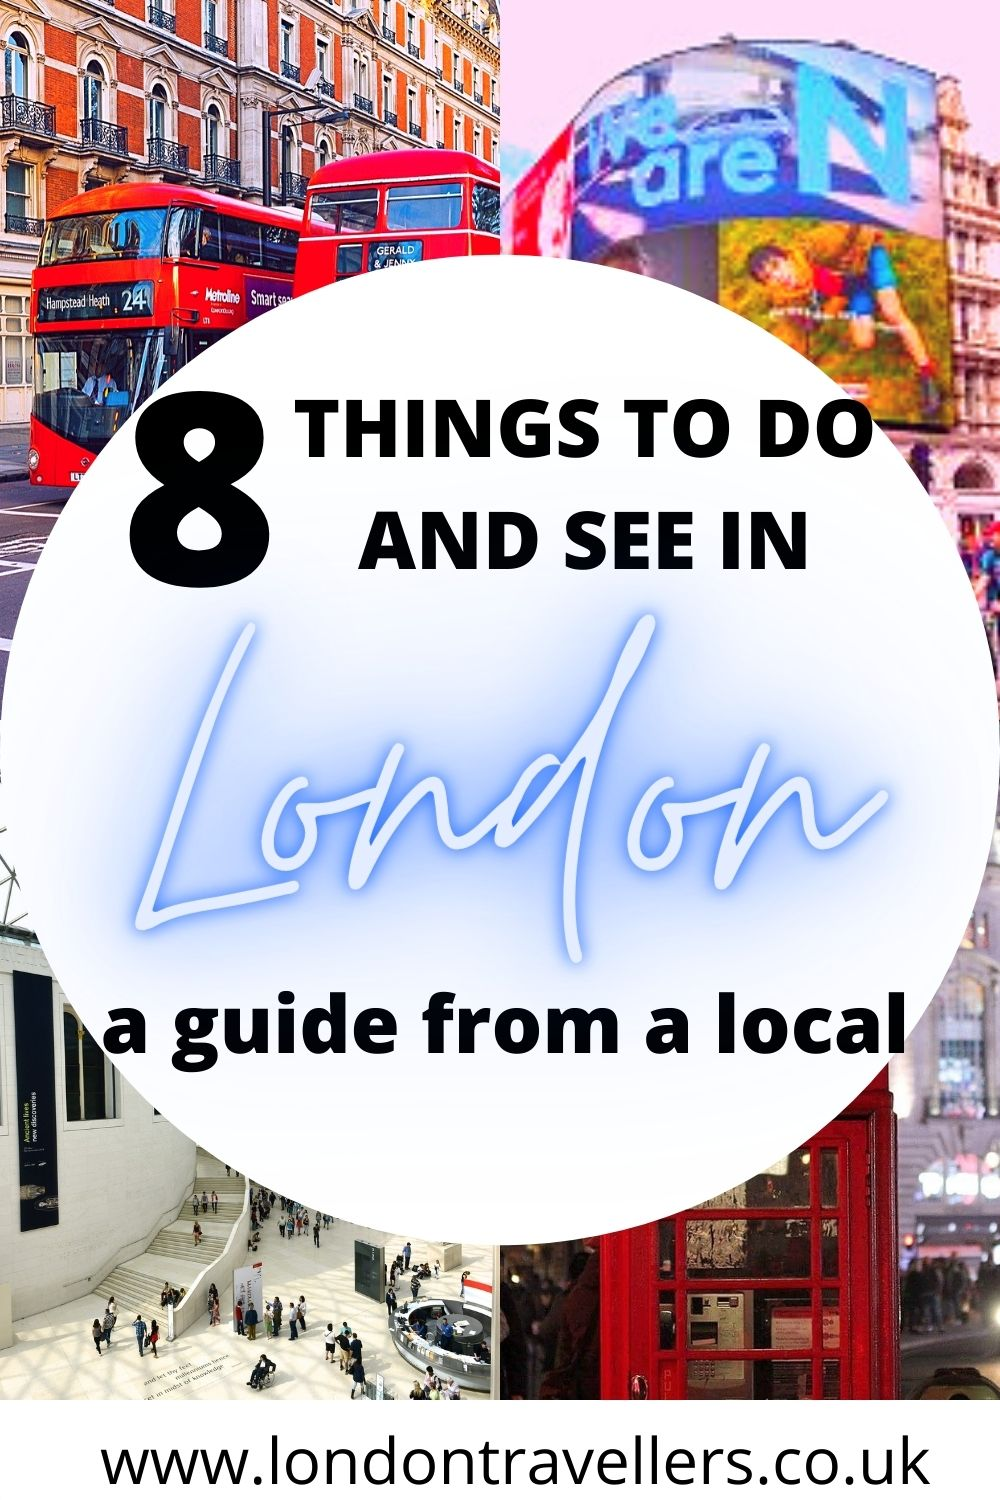 8 Things to do and see in London